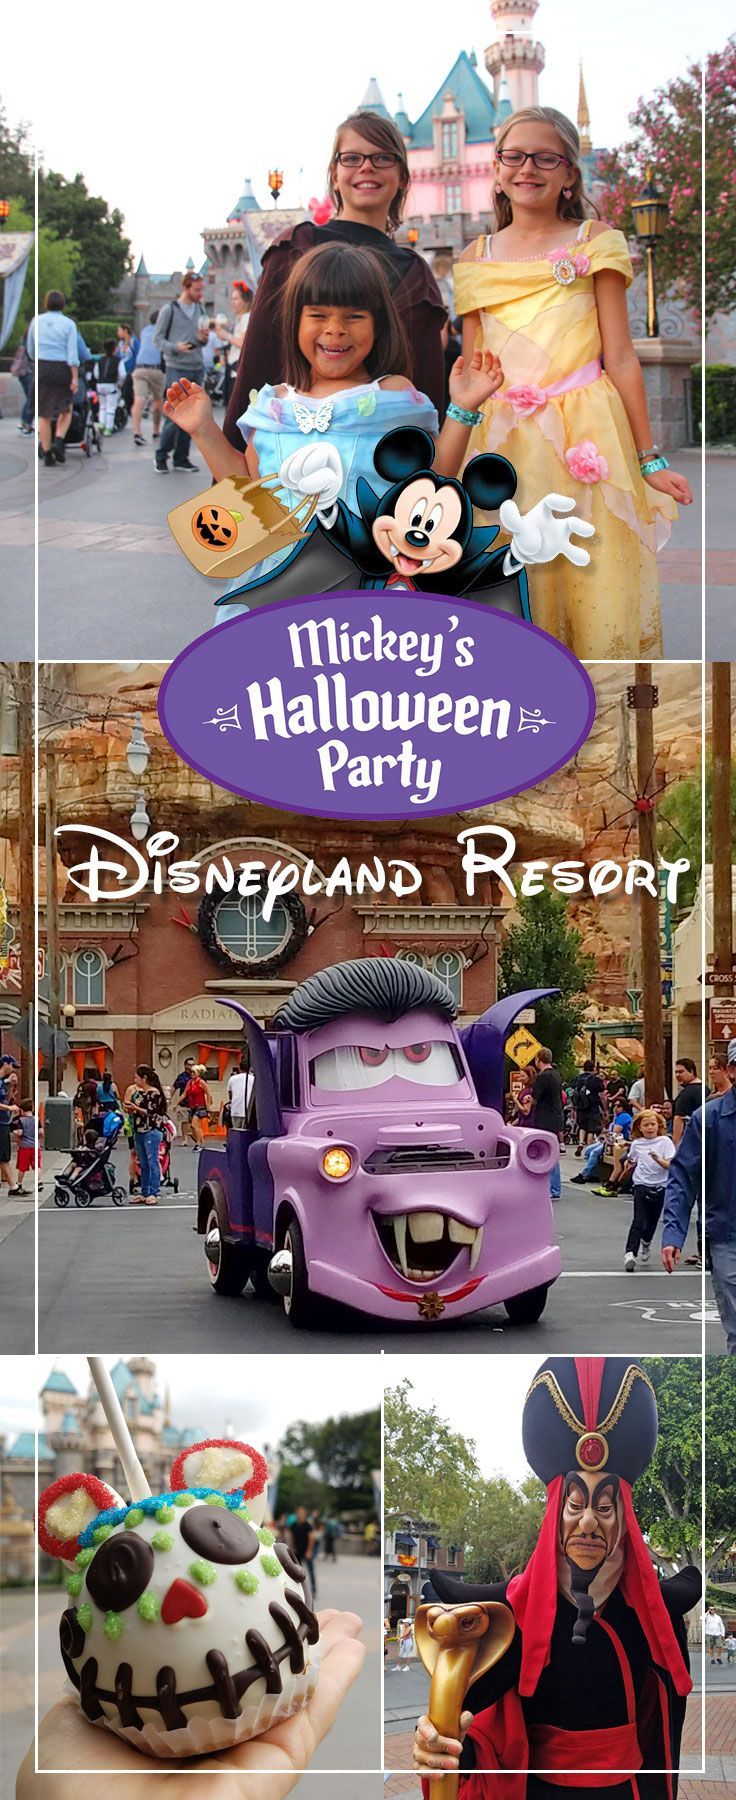 mickeys halloween party 2017 is sold out get information about the 2018 party disneyland resort is the place to be for halloween time